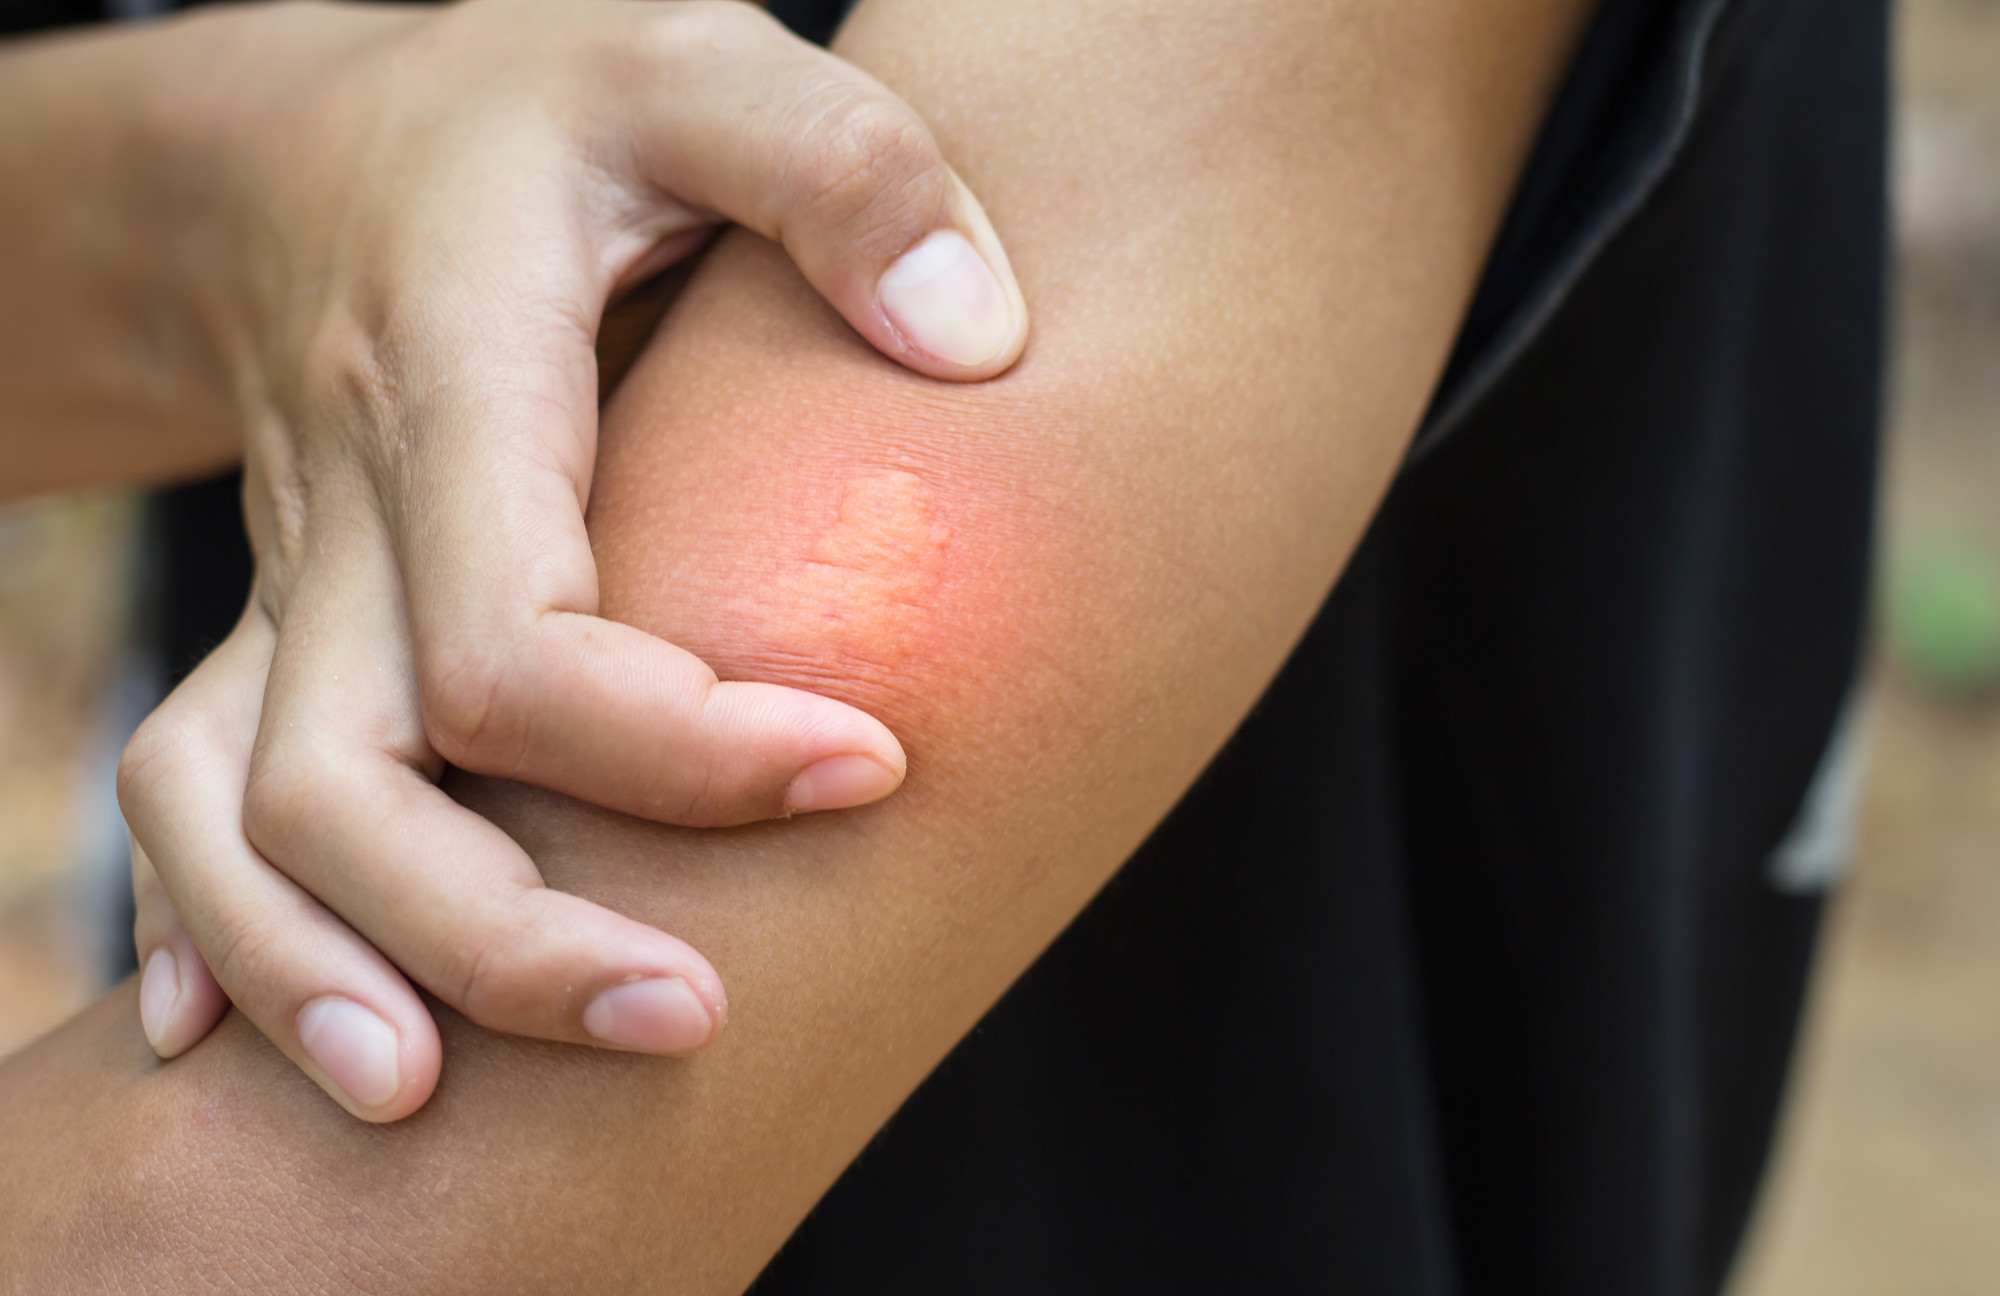 What to Do if You or a Loved One Is Experiencing an Allergic Reaction